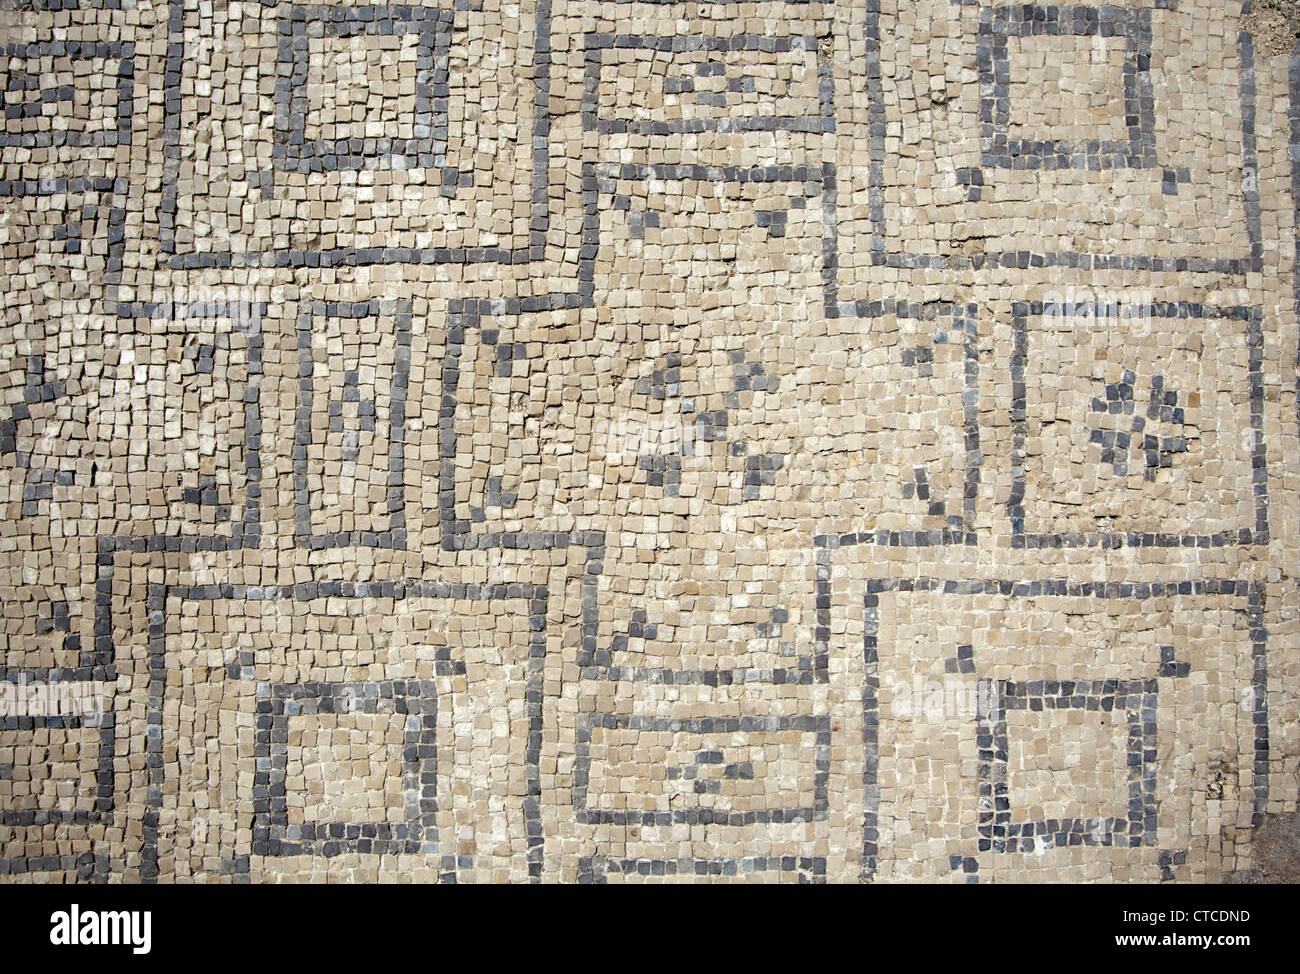 Floor tiles at an ancient roman bath at the archaeological site floor tiles at an ancient roman bath at the archaeological site beit shean national park israel dailygadgetfo Images